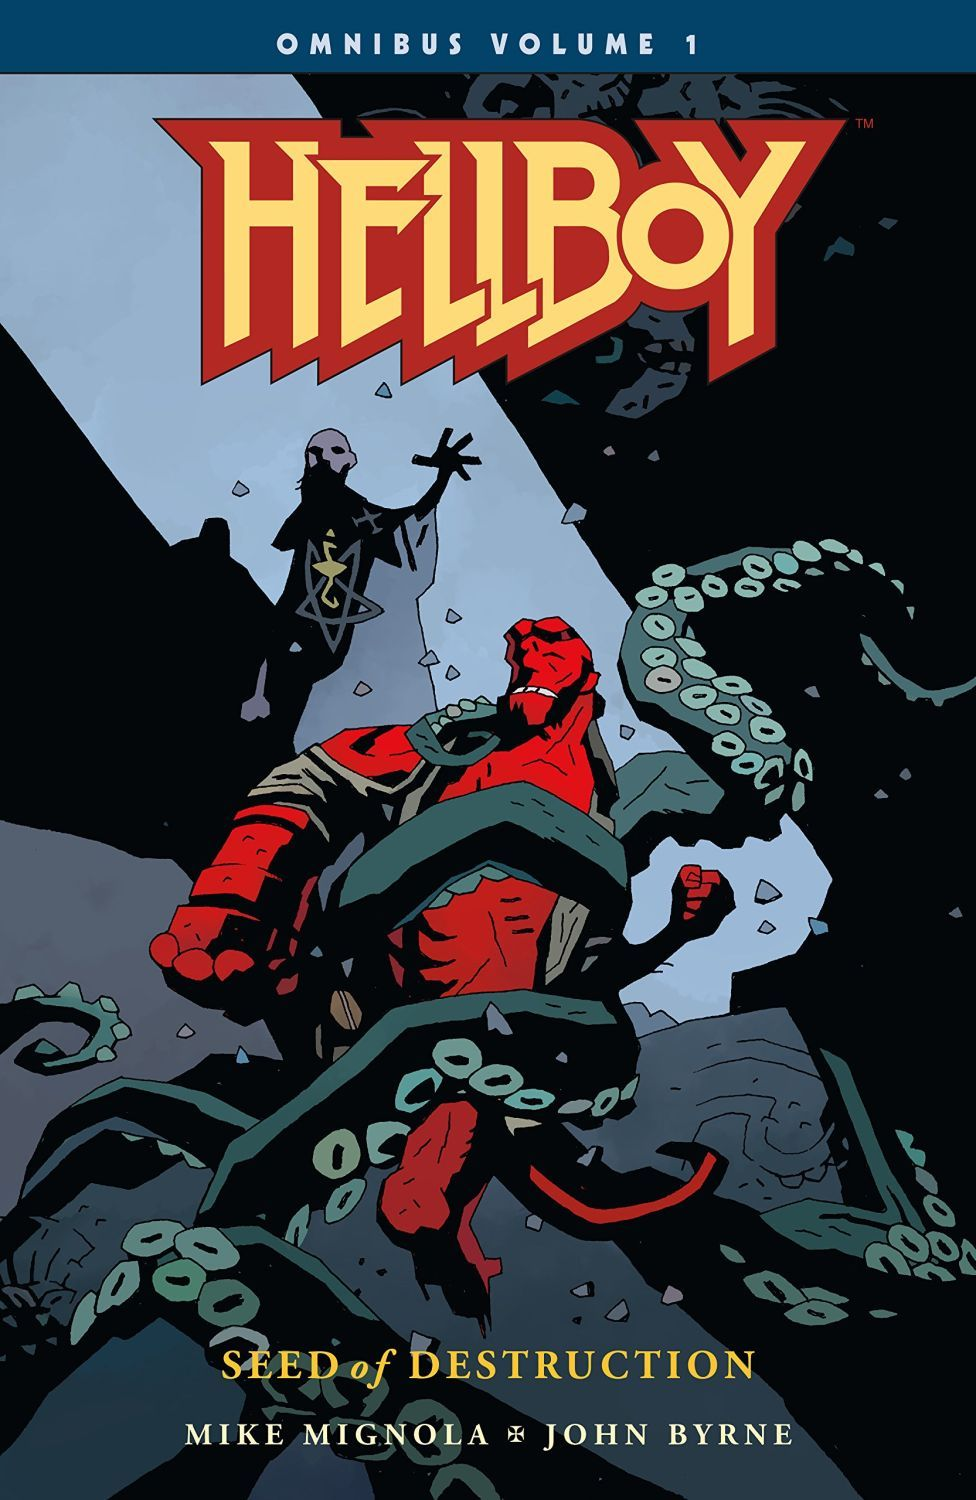 Hellboy Omnibus Volume 1 Seed of Destruction - 1